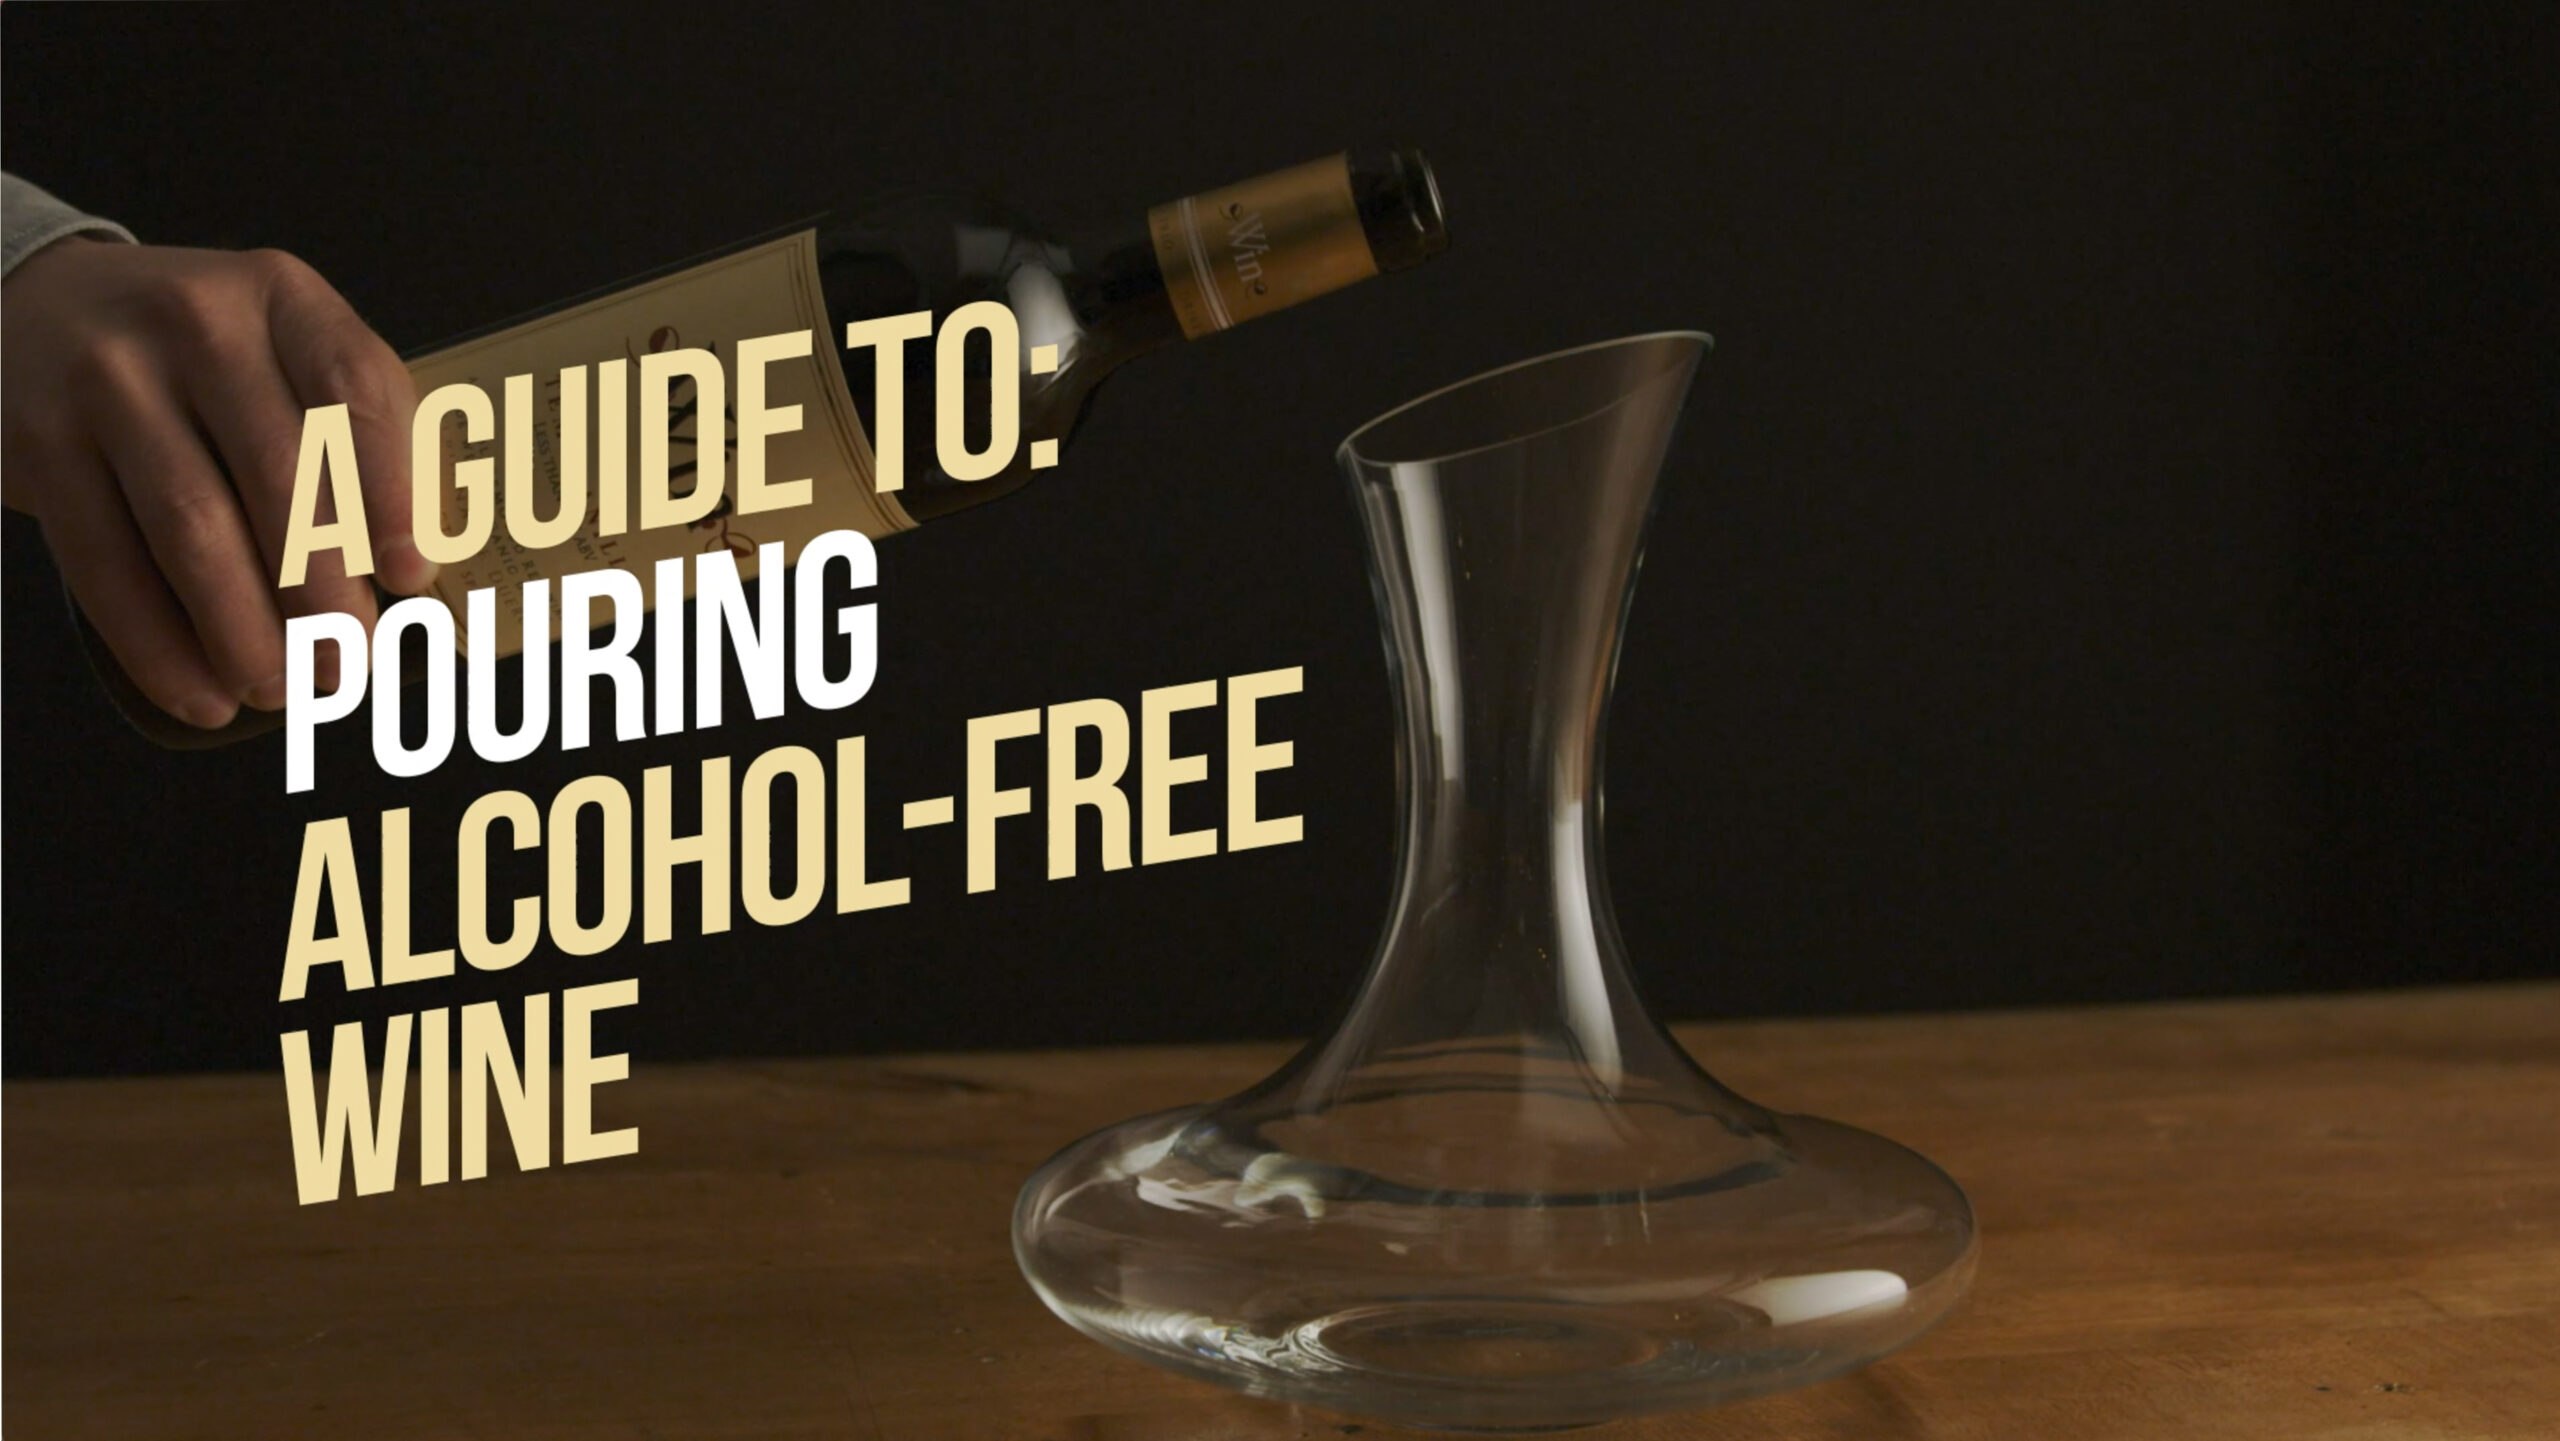 Rival House - A guide to: Pouring Alcohol-Free Wine